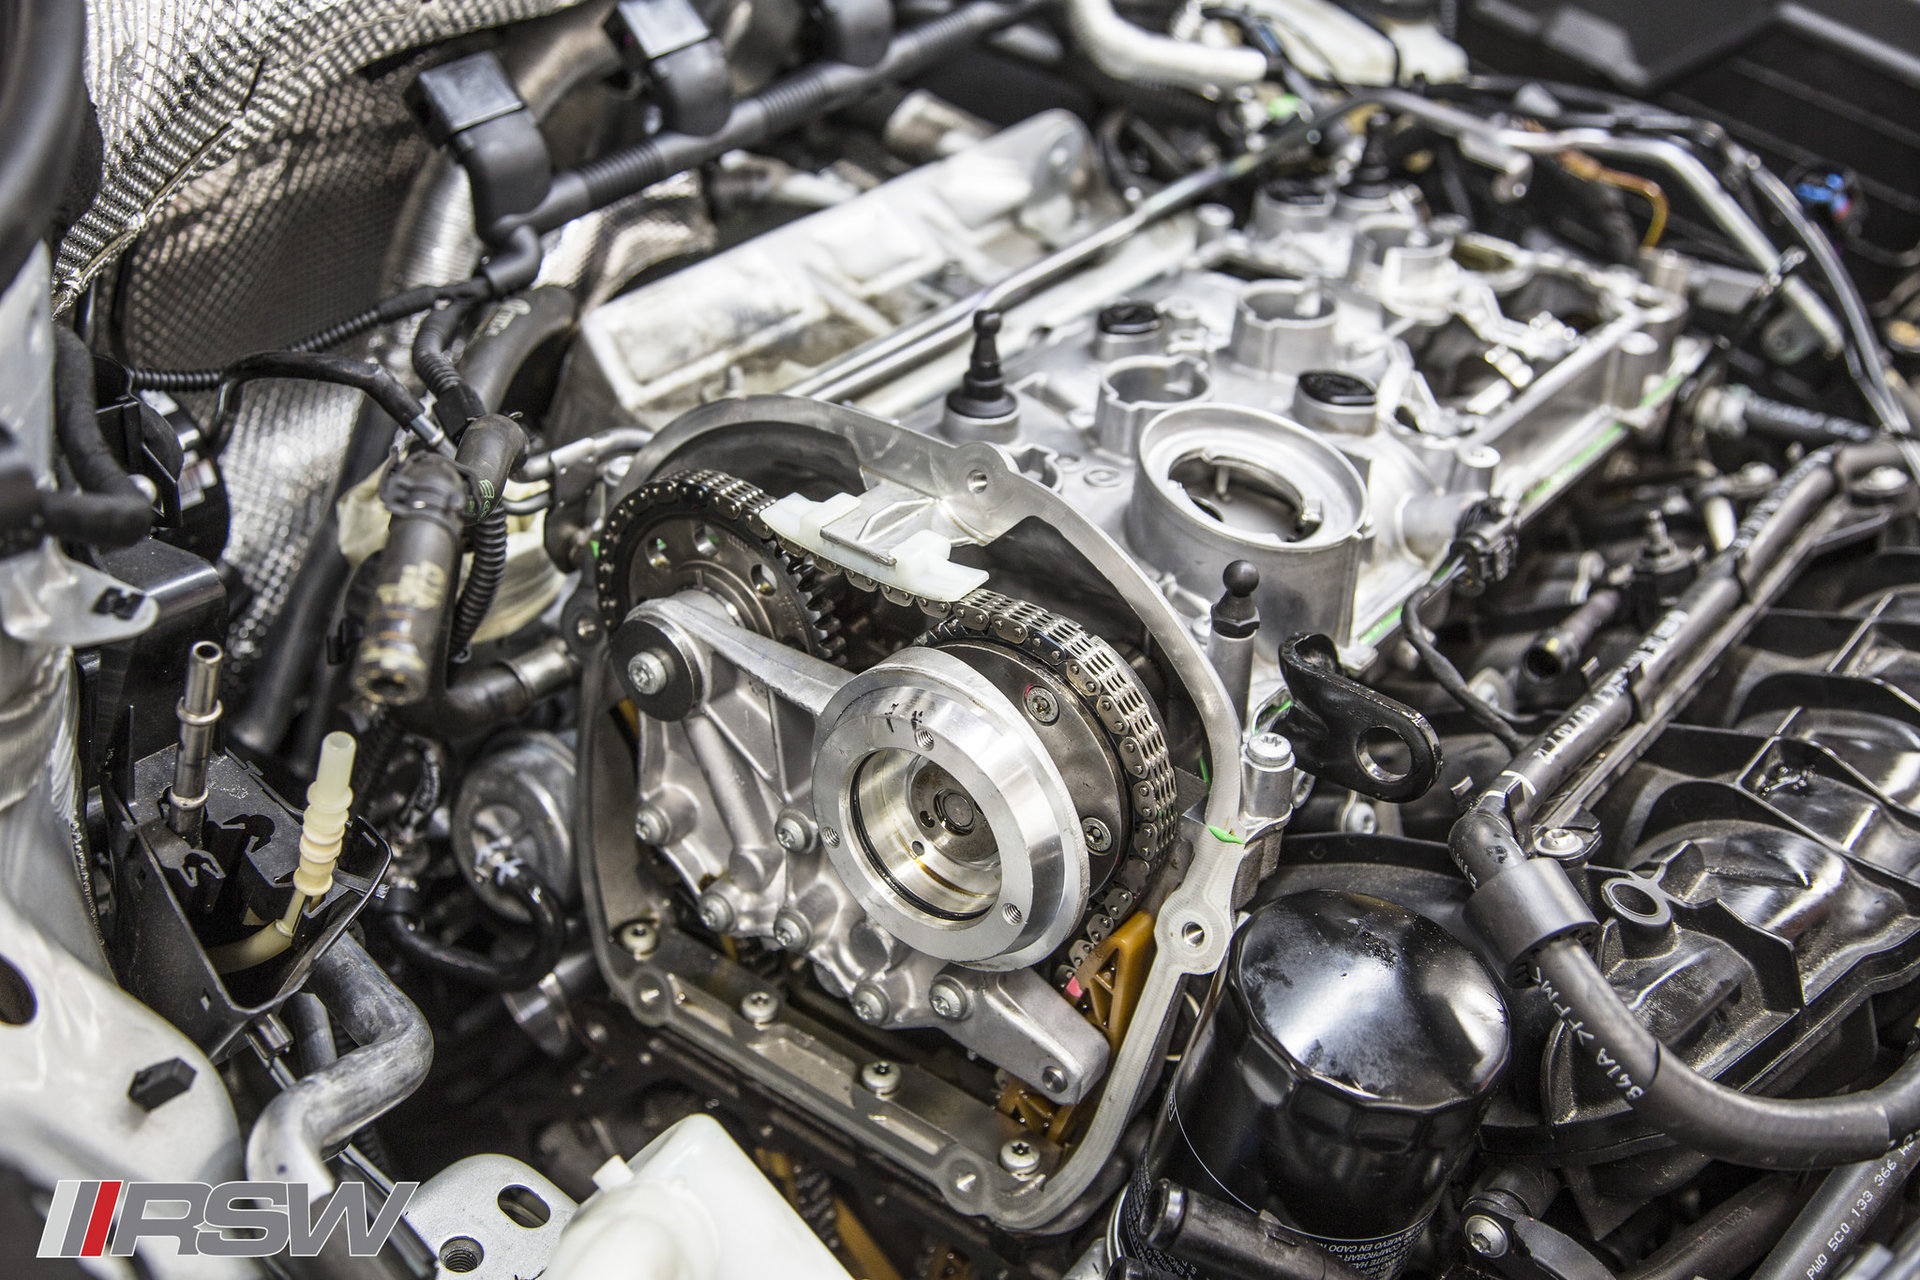 VW_audi_TSI_Timing_chain_service_1.jpg